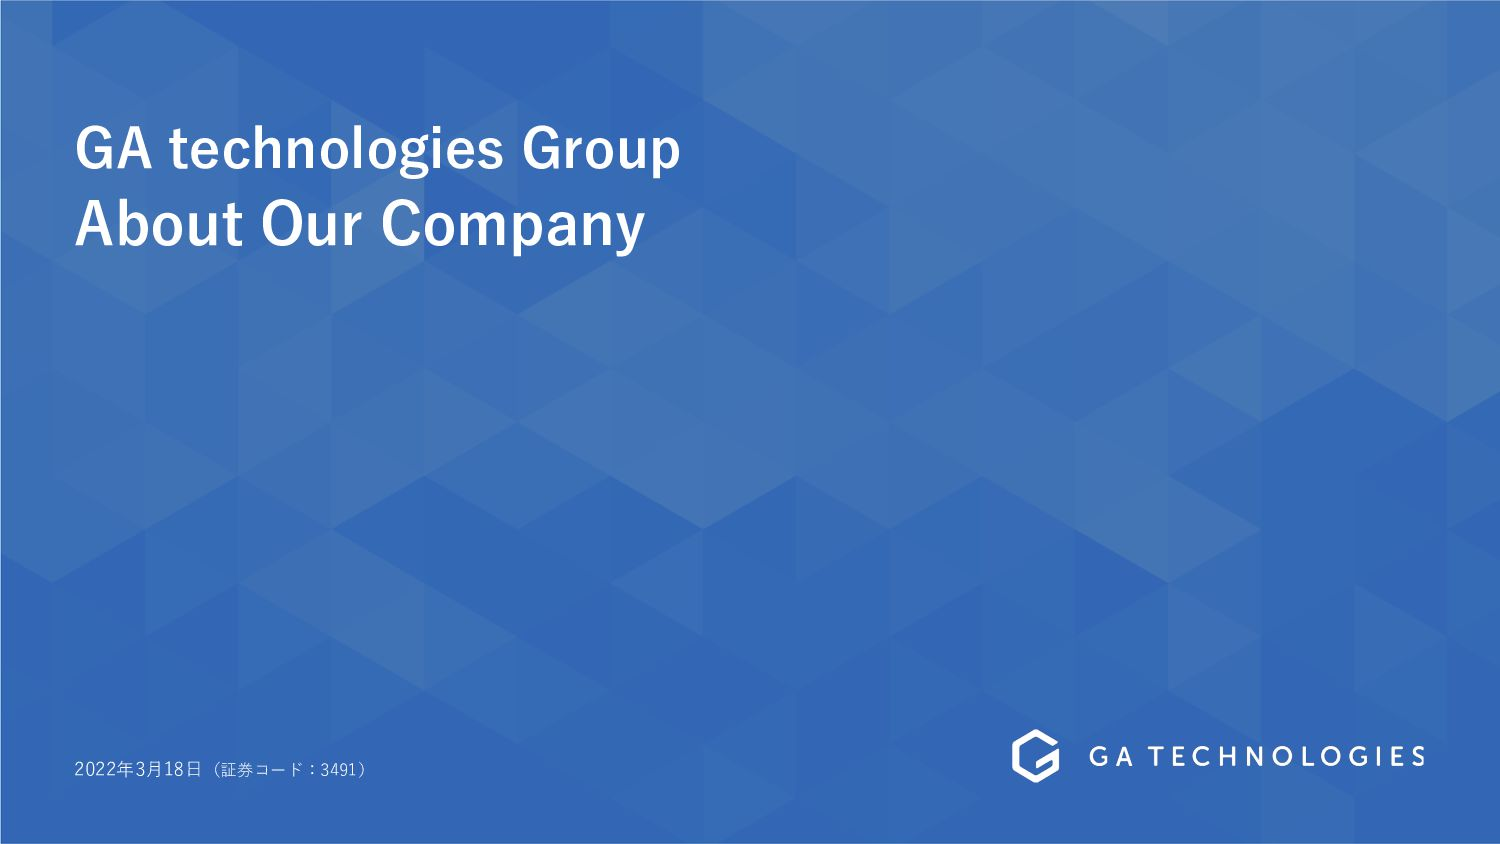 About Our Company 2021.05.07更新 2021 © GA techno...